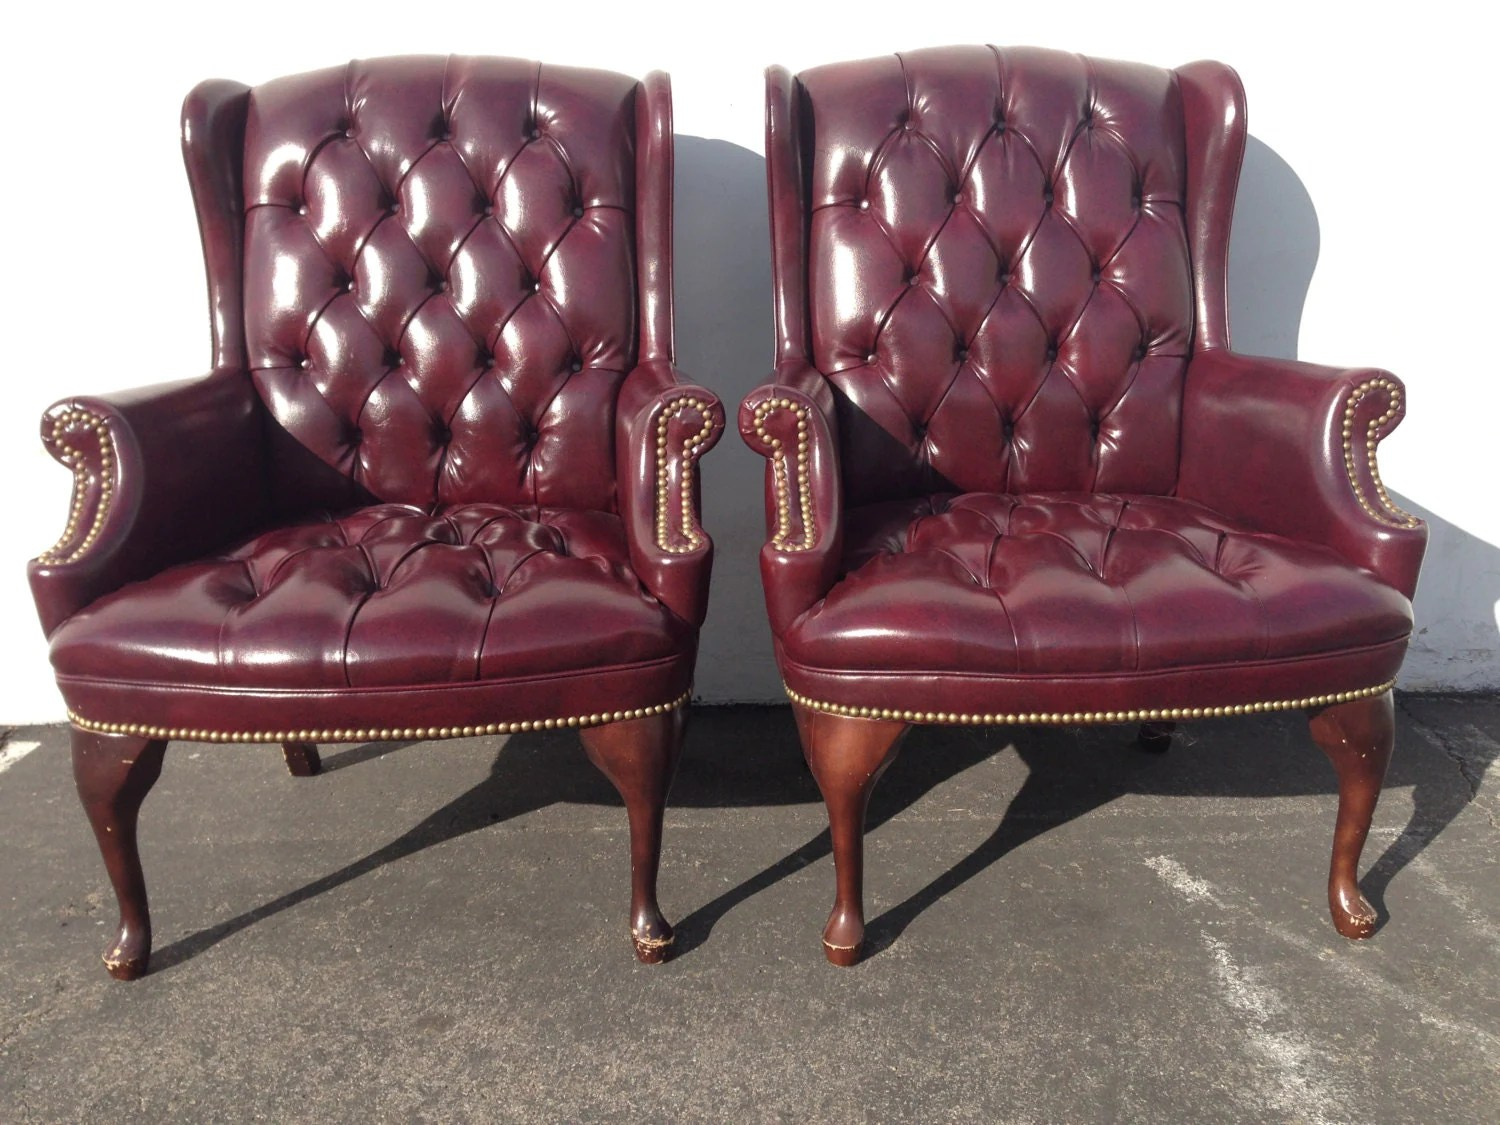 oxblood leather wing chair high back vinyl dining chairs 2 handsome deep tufted chippendale loungers